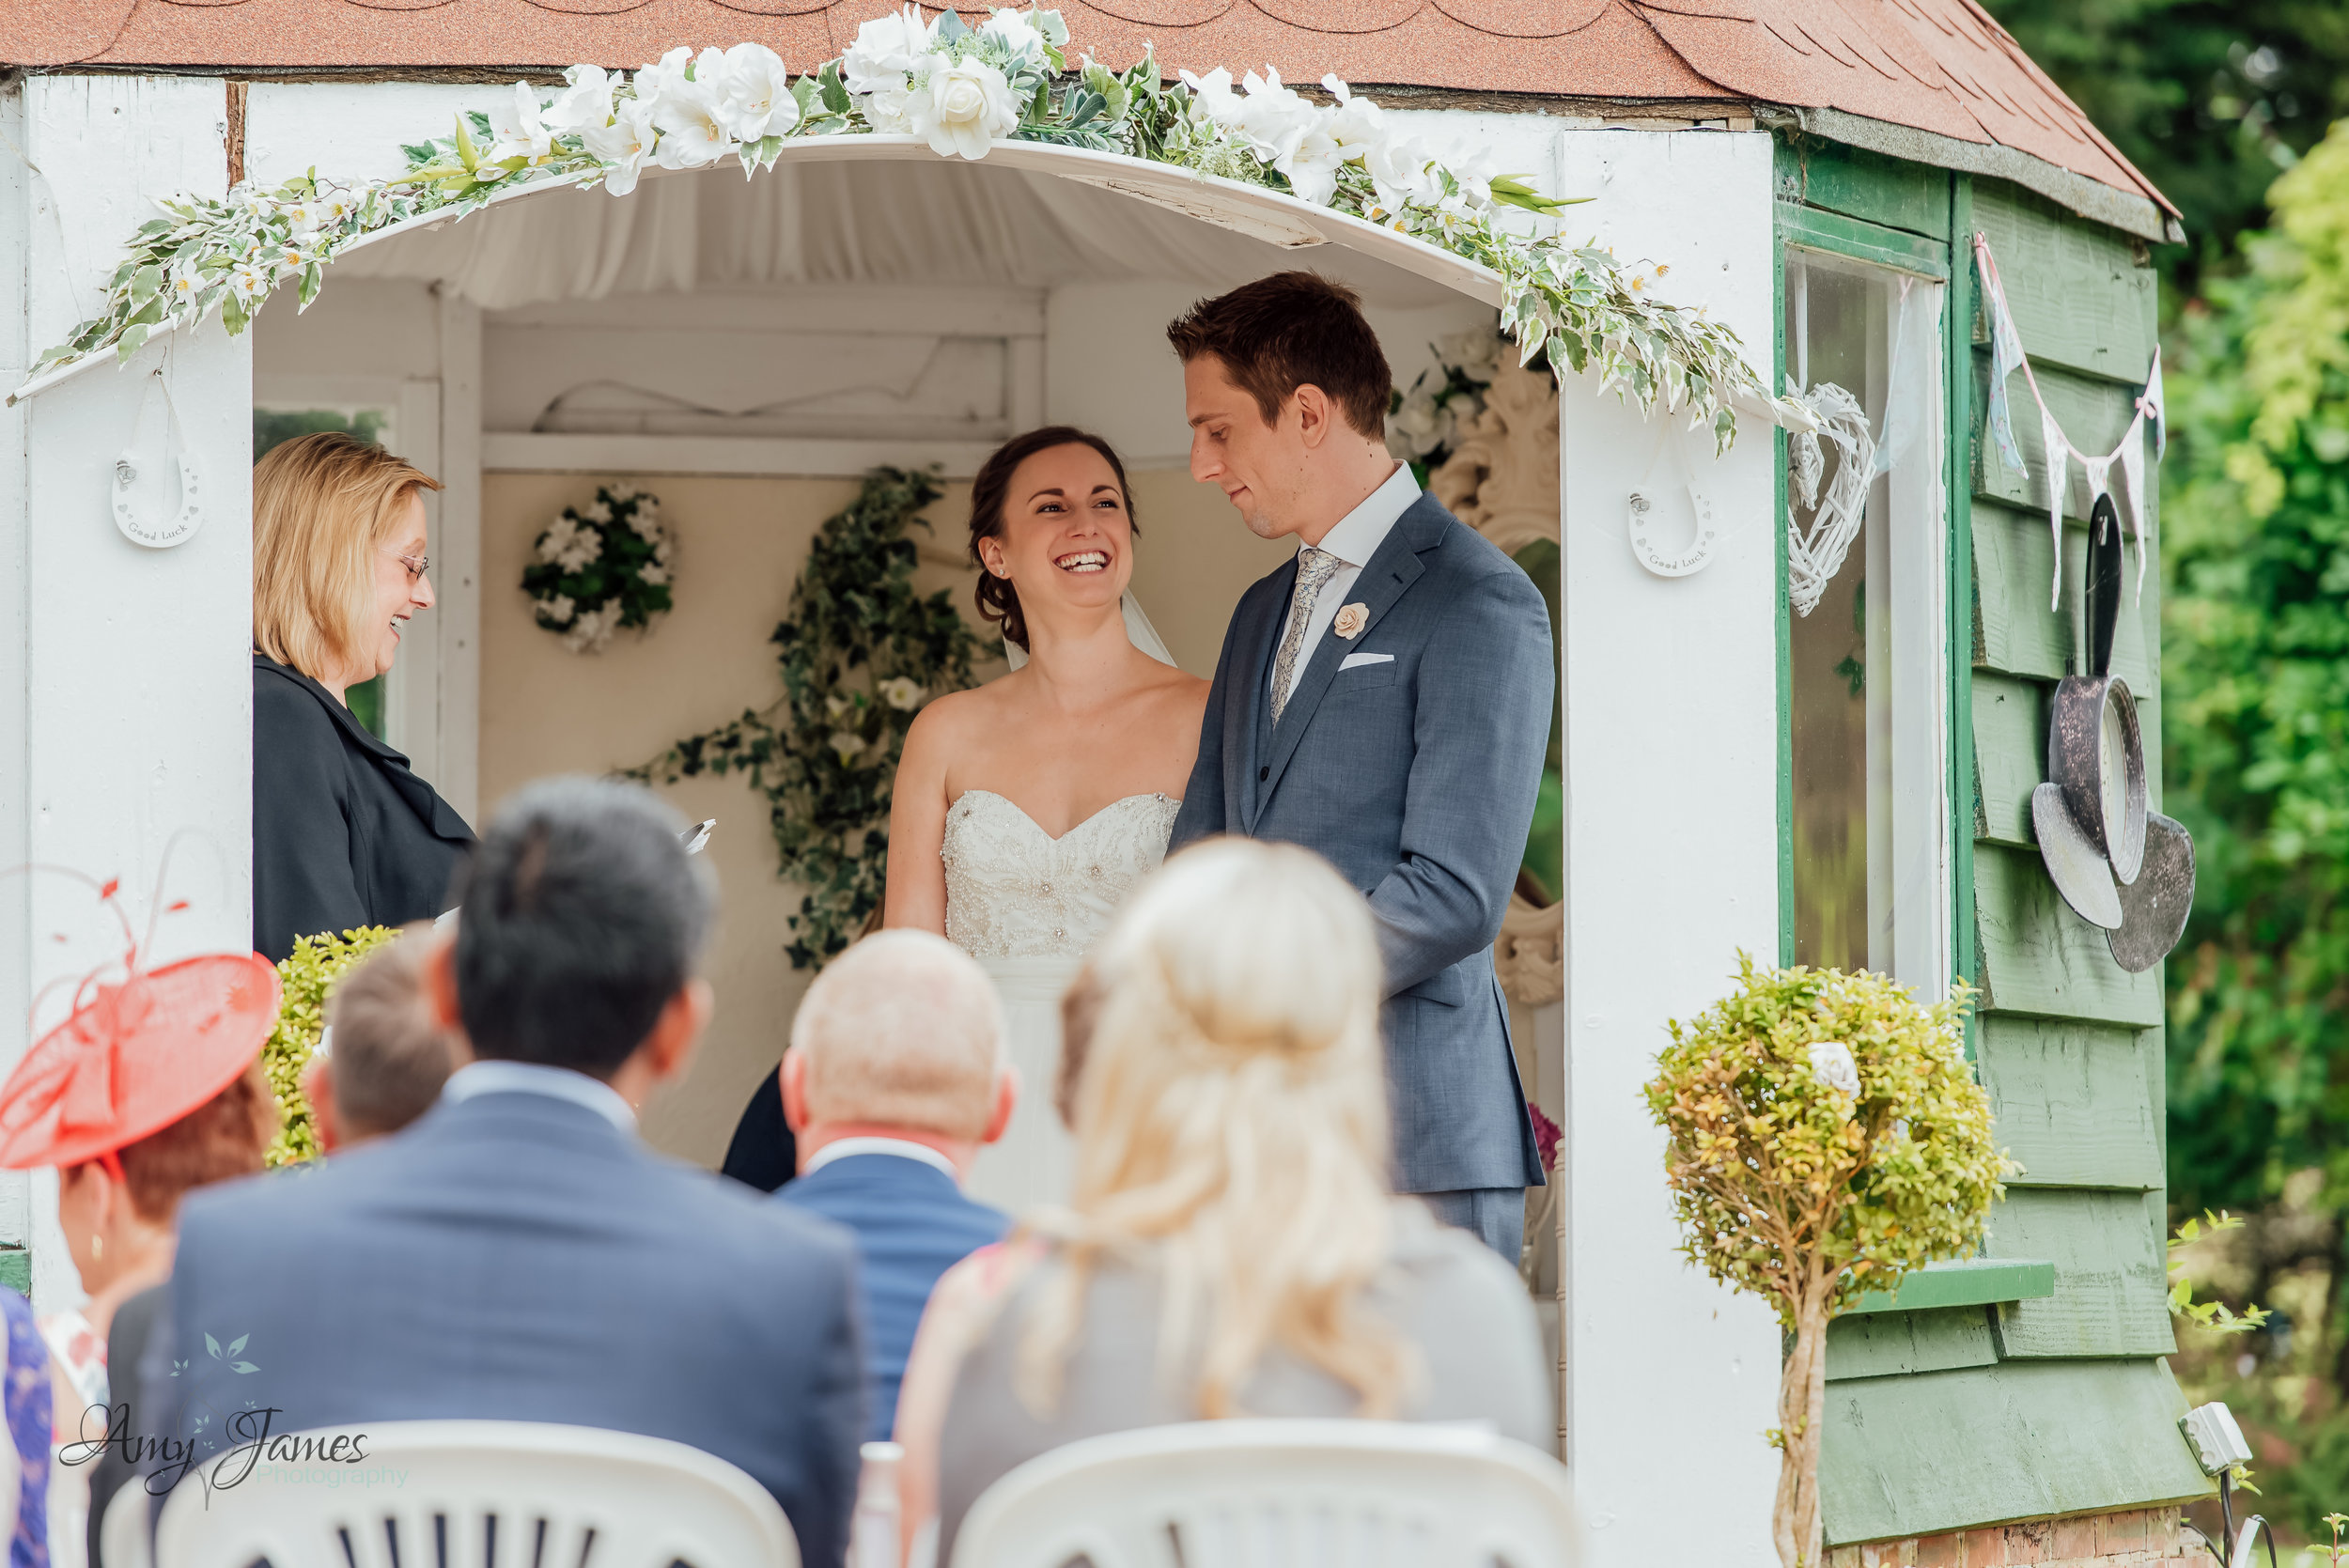 Outdoor garden wedding ceremony photograph at taplins Place Hampshire - Amy James Photography